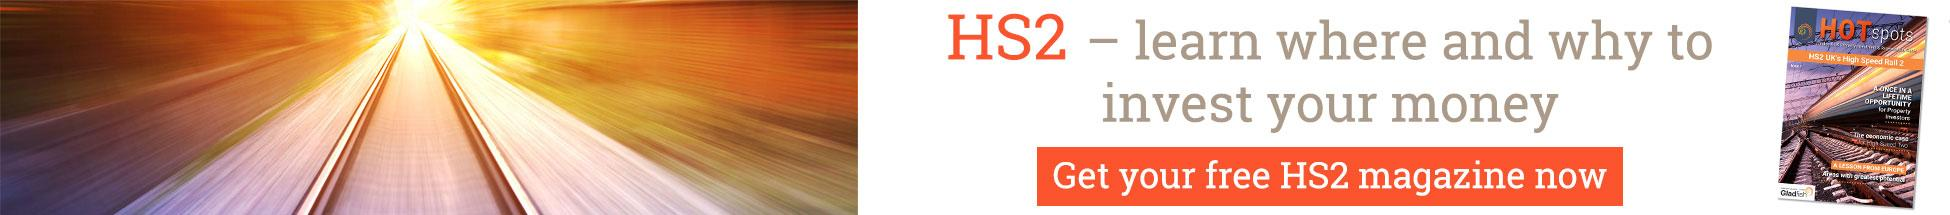 HS2 Property Investment Opportunities